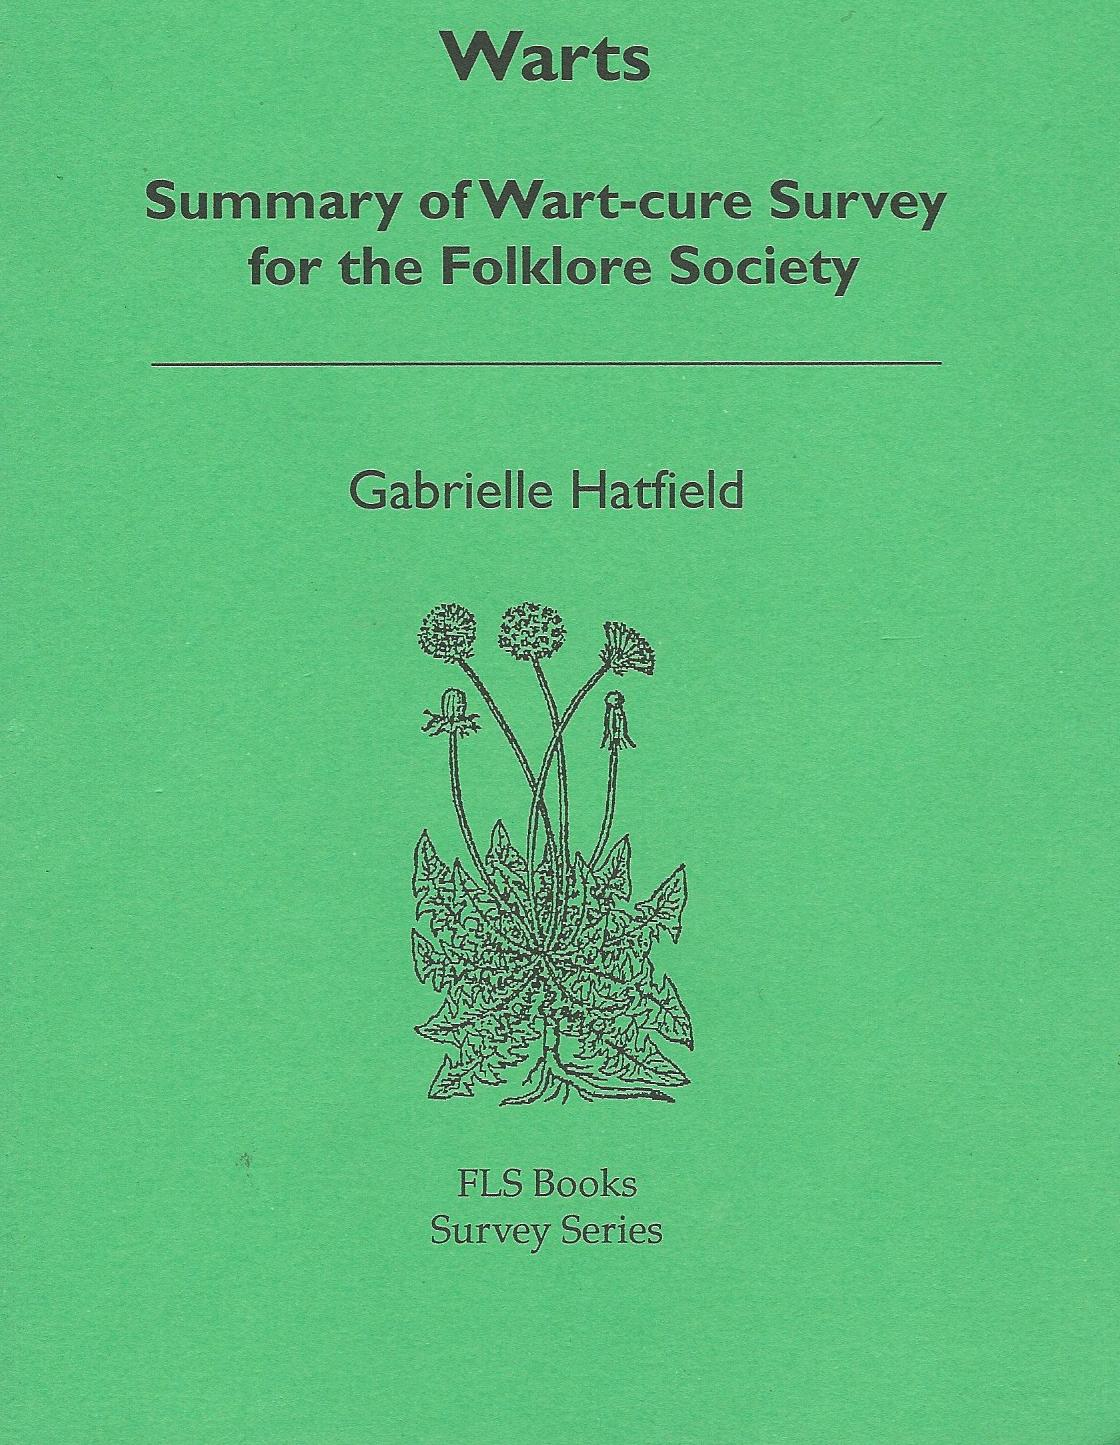 Image for Warts: Summary of Wart-cure Survey for the Folklore Society.